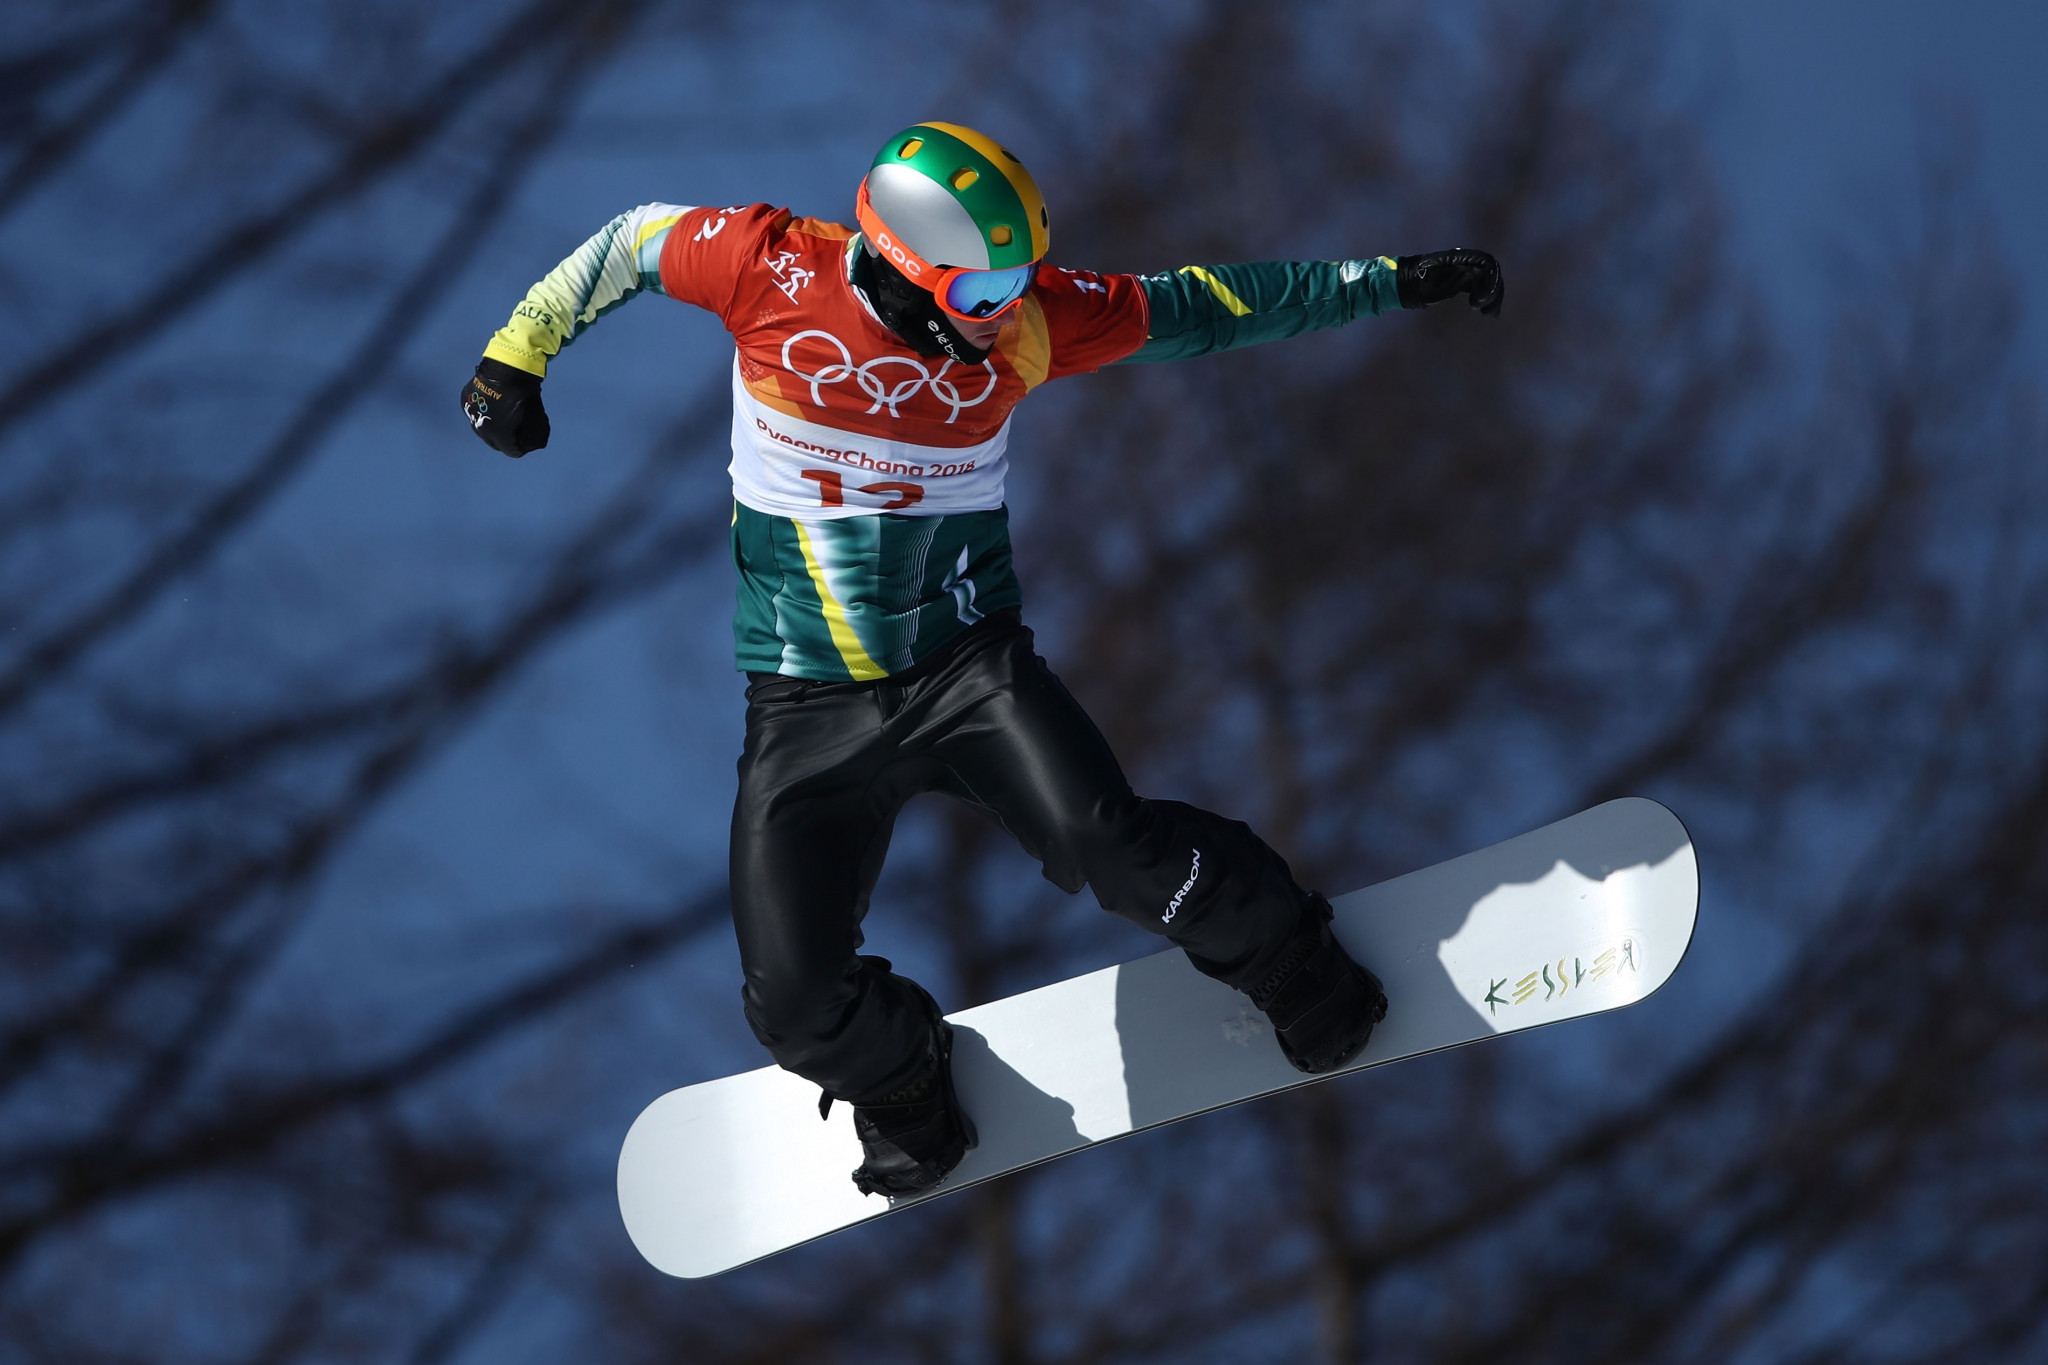 Medal-winning performances from the likes of snowboarder Jarryd Hughes have helped lead to unexpectedly high television viewing figures in Australia ©Getty Images